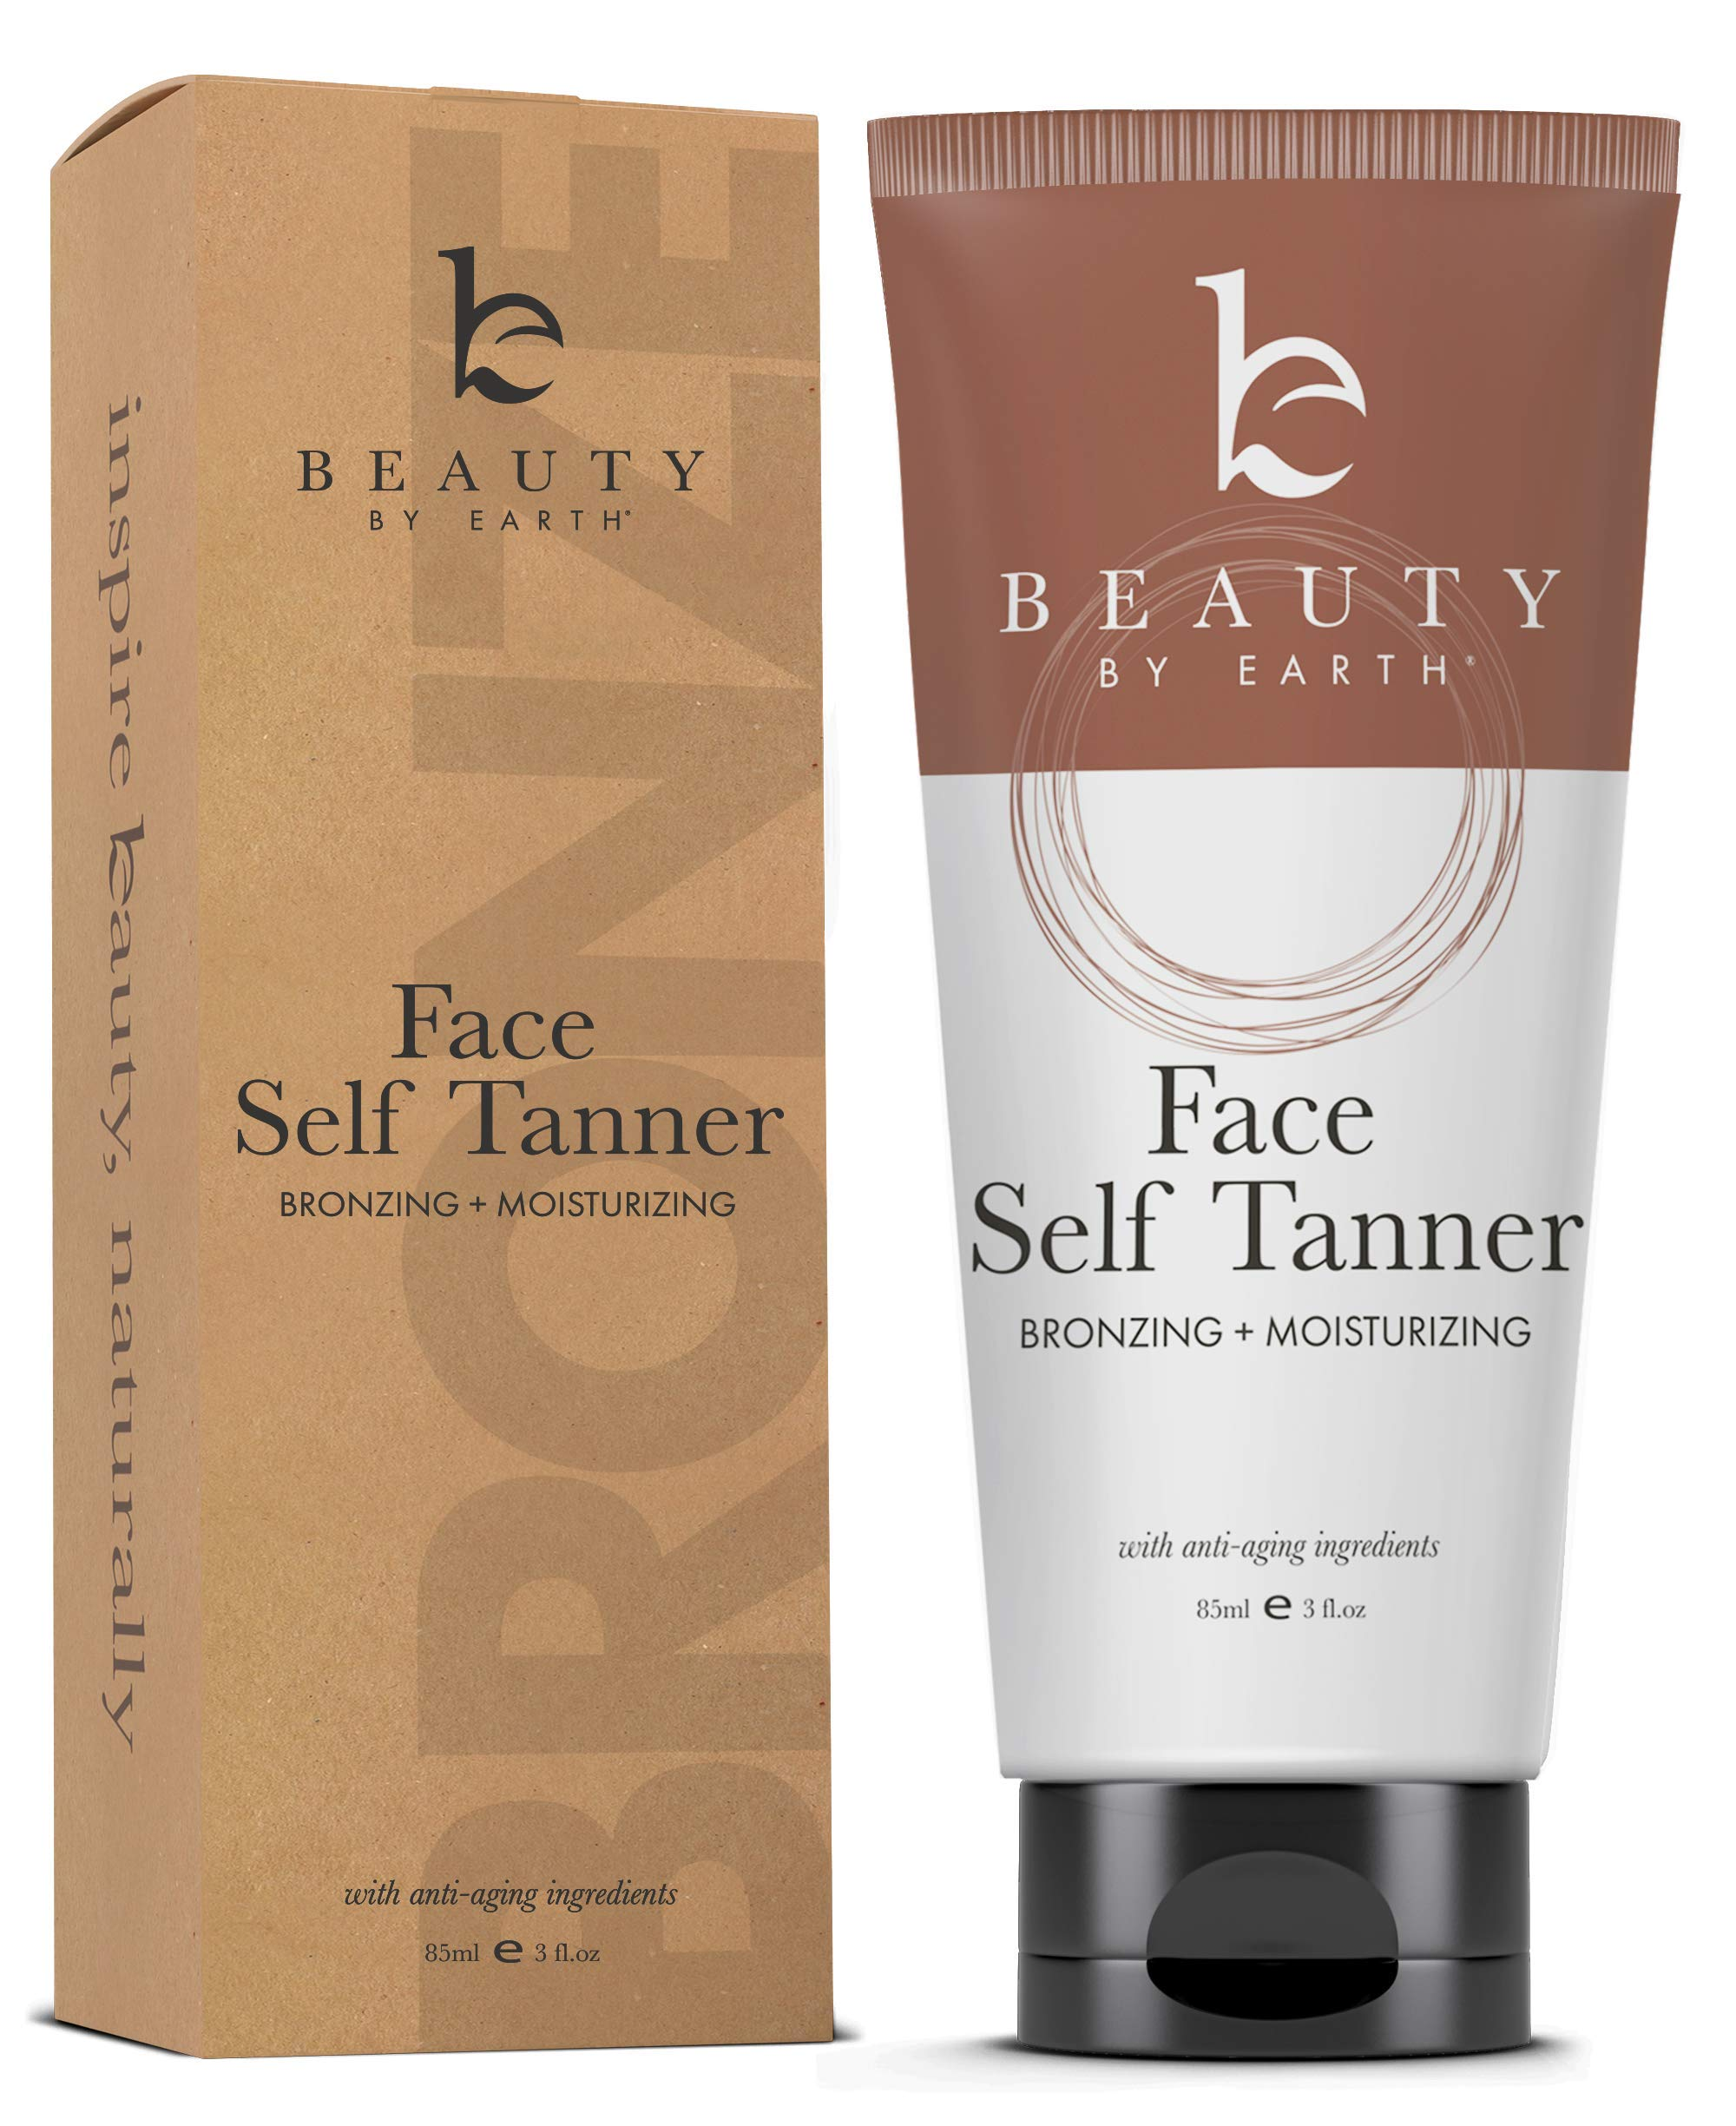 Self Tanner for Face with Organic & Natural Ingredients, Tanning Lotion, Sunless Tanning Lotion for Flawless Darker Bronzer Skin, Self Tanning Lotion - Self Tanners Best Sellers, Fake Tan by Beauty by Earth